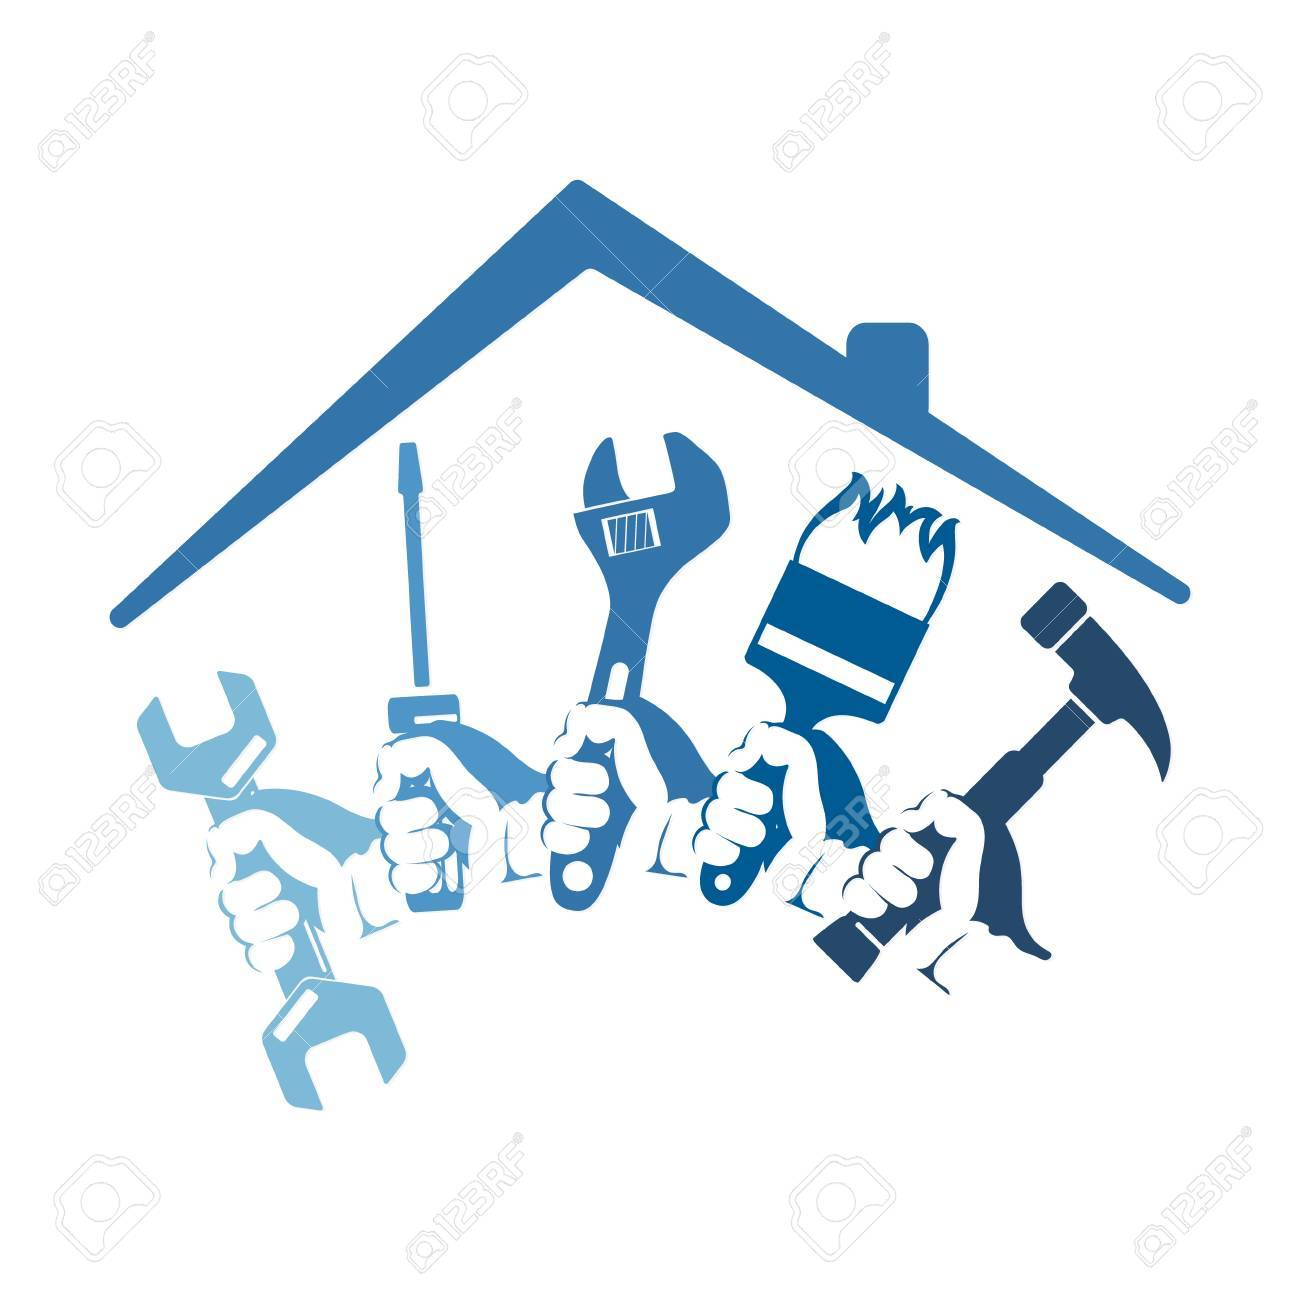 Home repairs with a tool for business symbol - 72547117